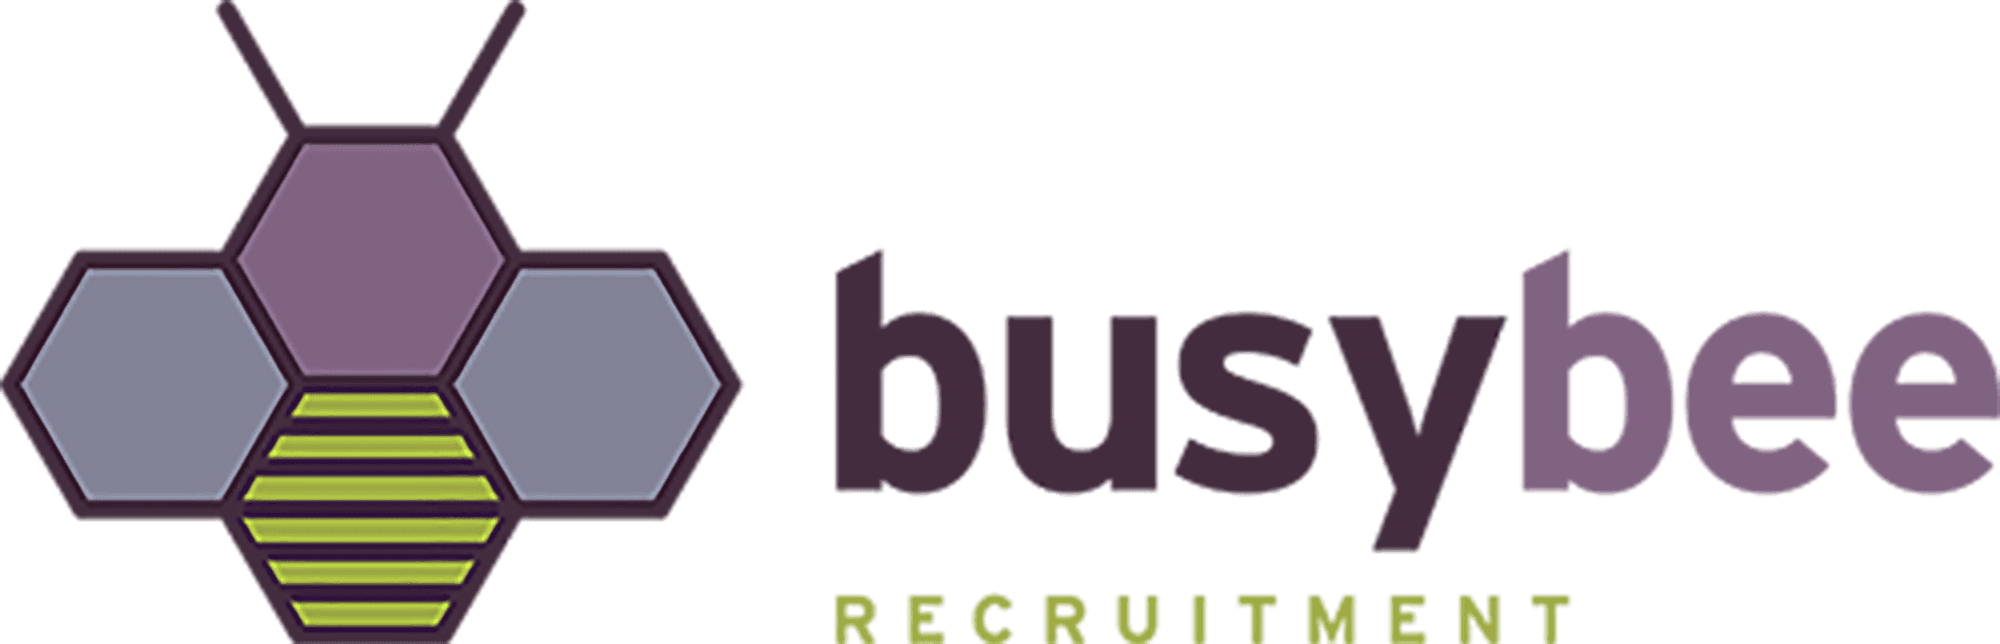 Busy Bee Recruitment | Bespoke recruitment solutions throughout East Anglia